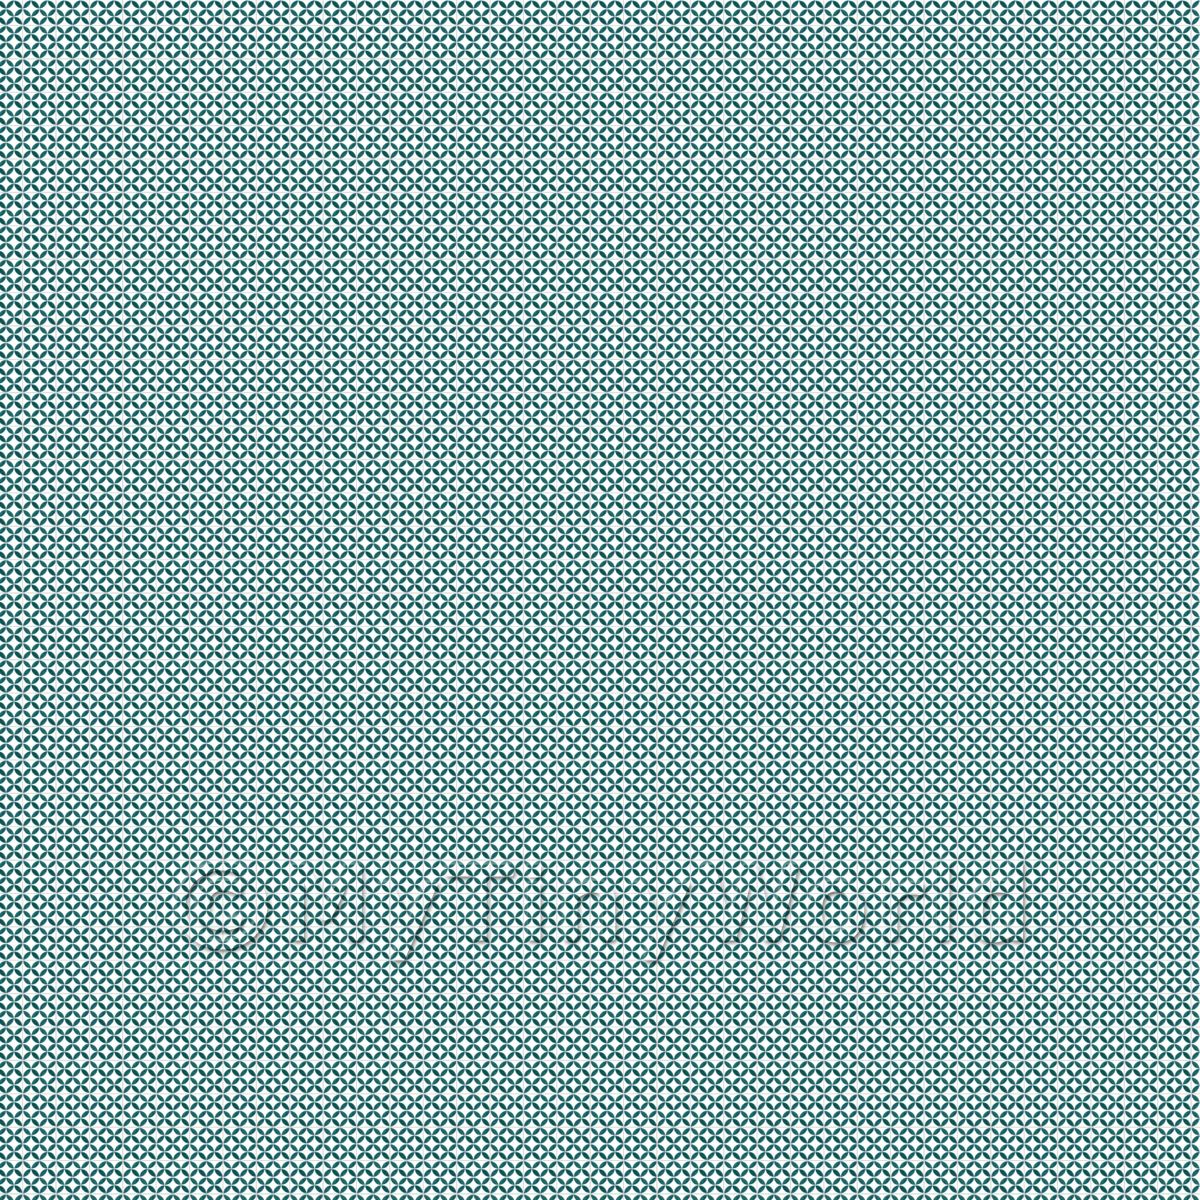 1:48th Sea Green Geometric Circle Design Tile Sheet With Grey Grout